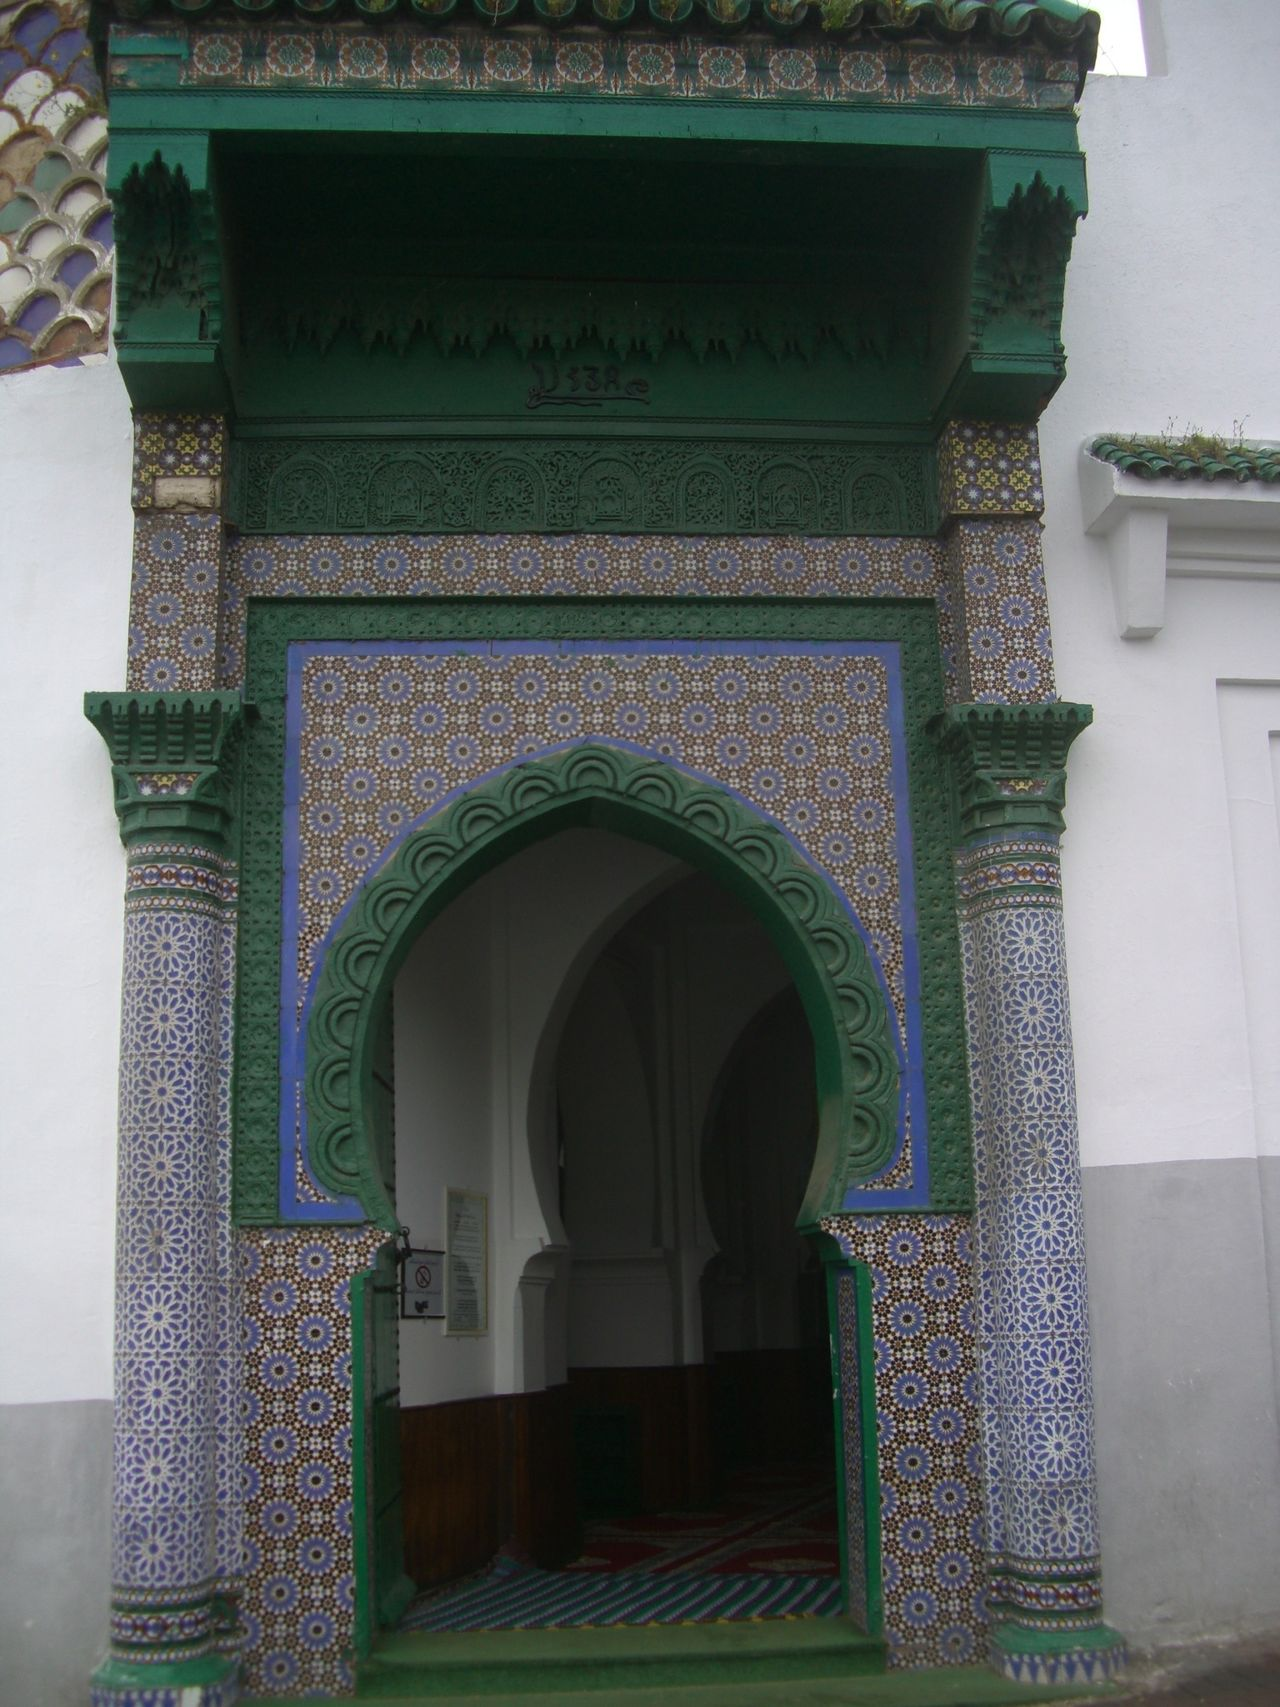 Side Entrance to the Mosque, Grand Socco Arabic Architecture Arabic Style Arch Architectural Columns Built Structure Composition Entrance Famous Place Full Frame Islam Islamic Islamic Architecture Islamic Art Islamic Style Moroccan Architecture Moroccan Style Morocco Mosque No People Outdoor Photography Place Of Worship Tangier Tourist Attraction  Tourist Destination